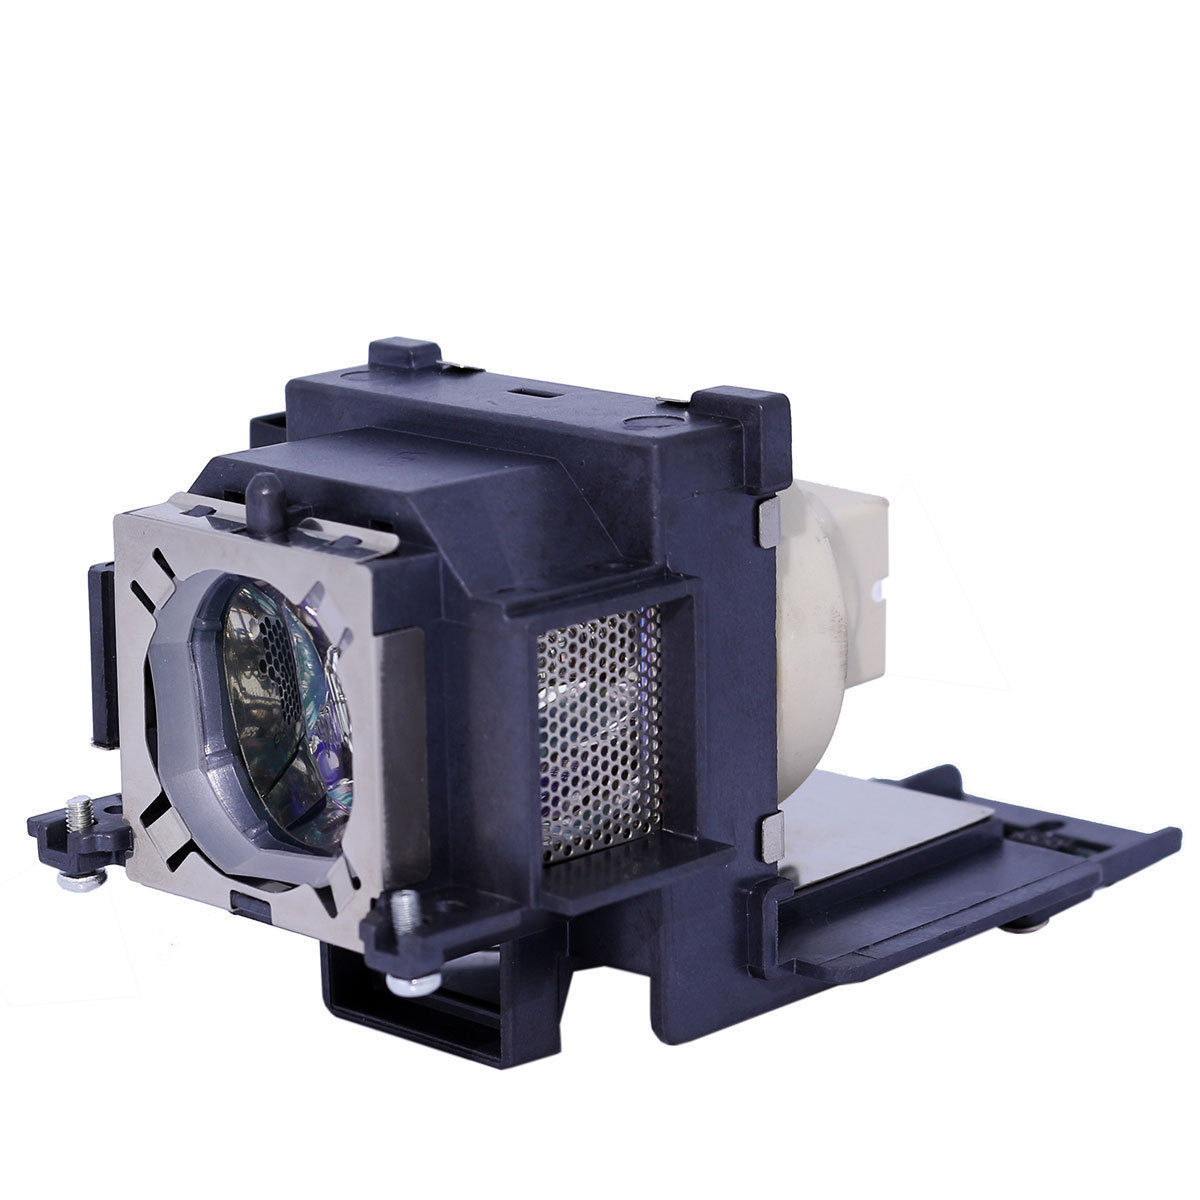 Projector Lamp Bulb ET-LAV100 for Panasonic PT-VX400 PT-VX400E PT-VX400EA PT-VW330 PT-VX400NTE PT-VX400NT PT-VX41 with housing et lab50 for panasonic pt lb50 pt lb50su pt lb50u pt lb50e pt lb50nte pt lb51 pt lb51e pt lb51u projector lamp bulb with housing